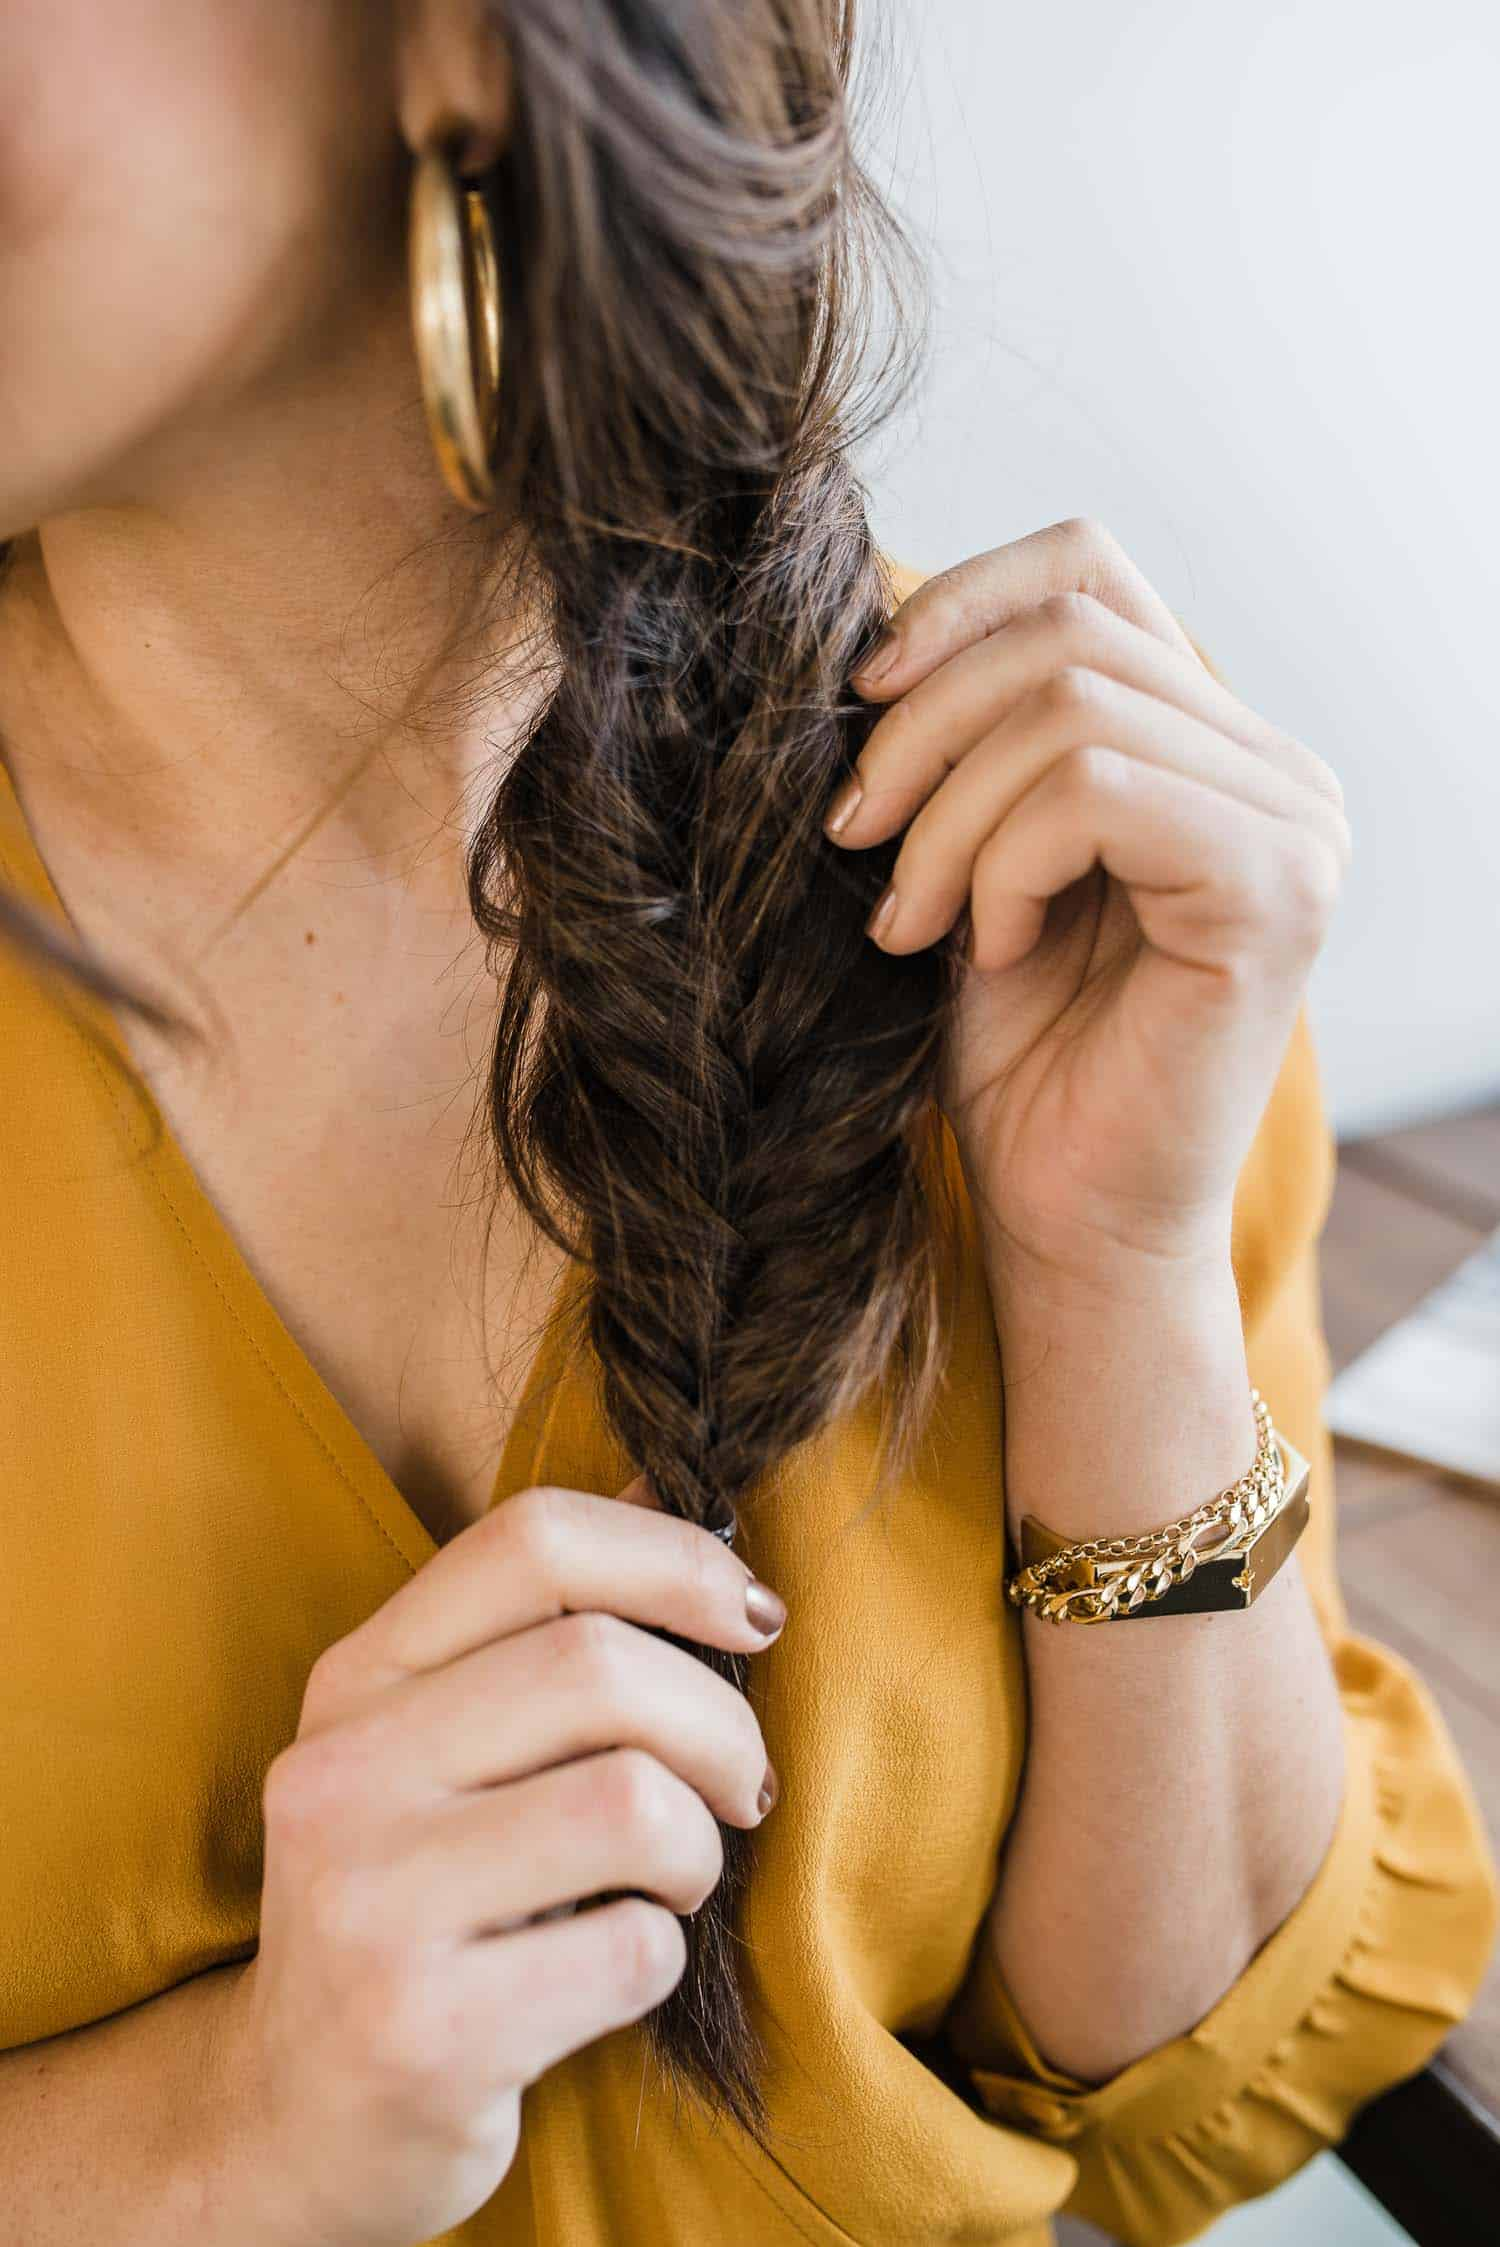 Jessica is featuring a Mustard Top, Gold Bracelet and Braided Hair